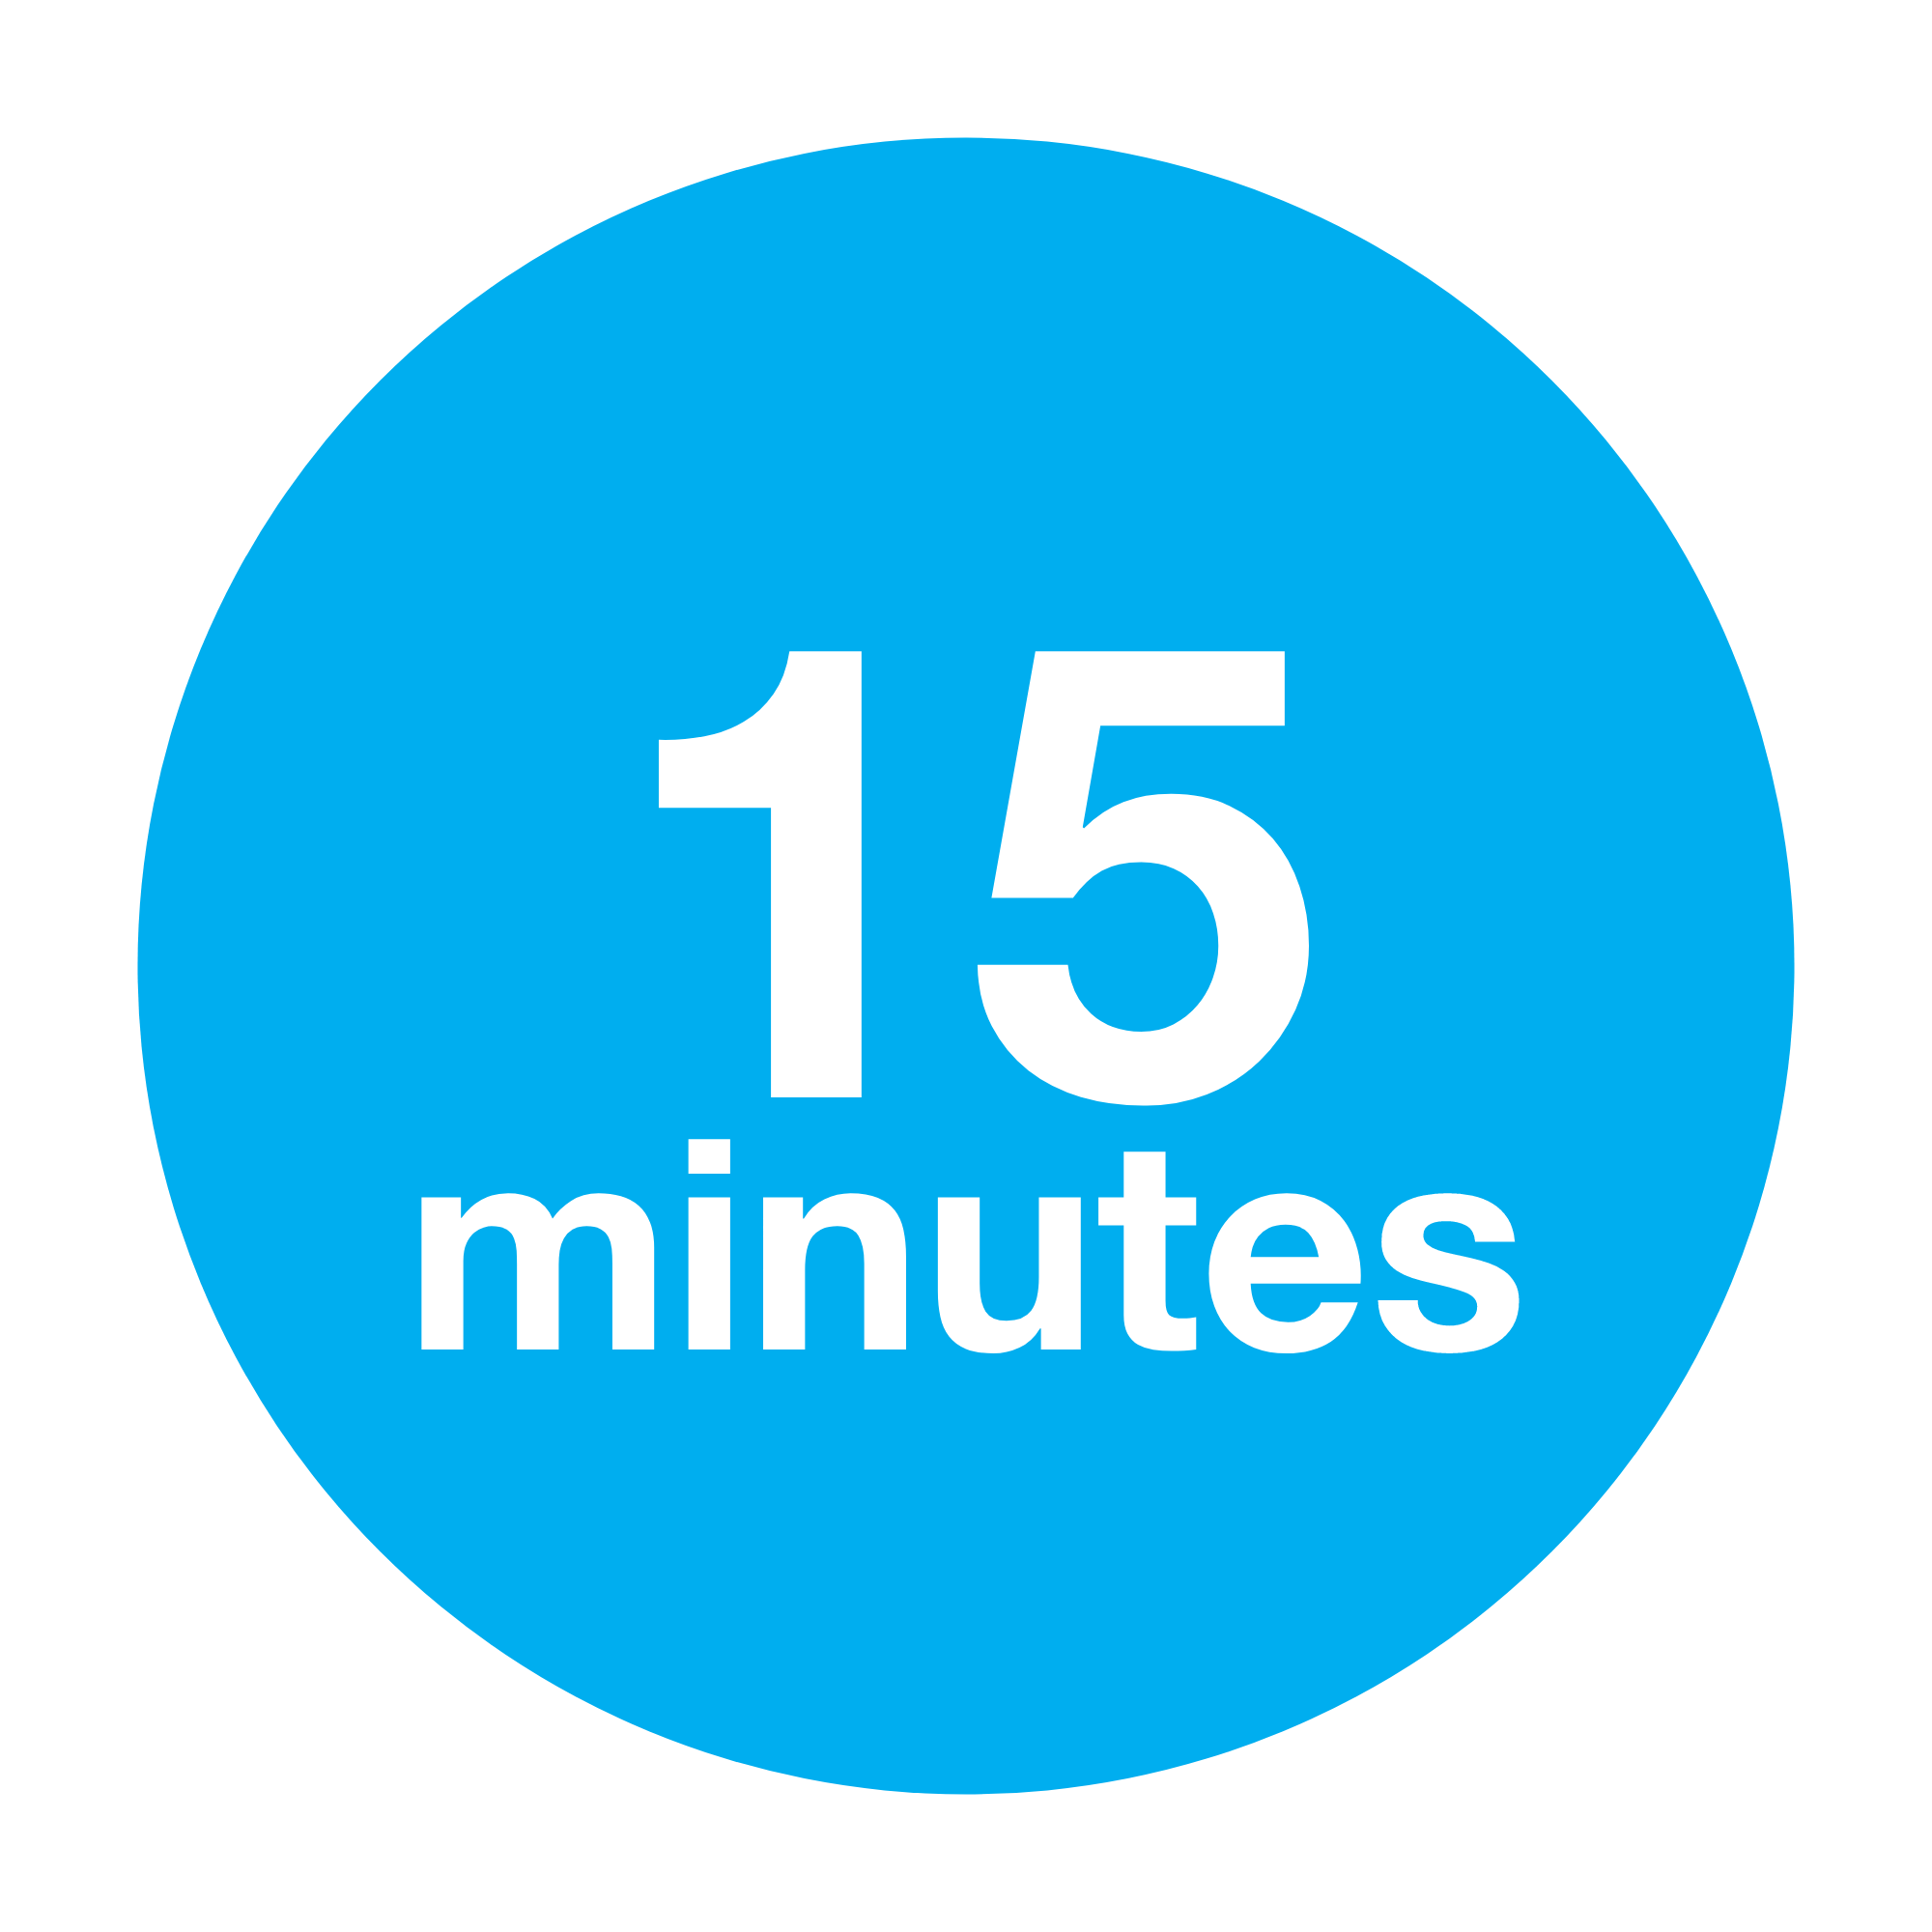 15 minutes saved per employee per day due tomore efficient collaboration tools